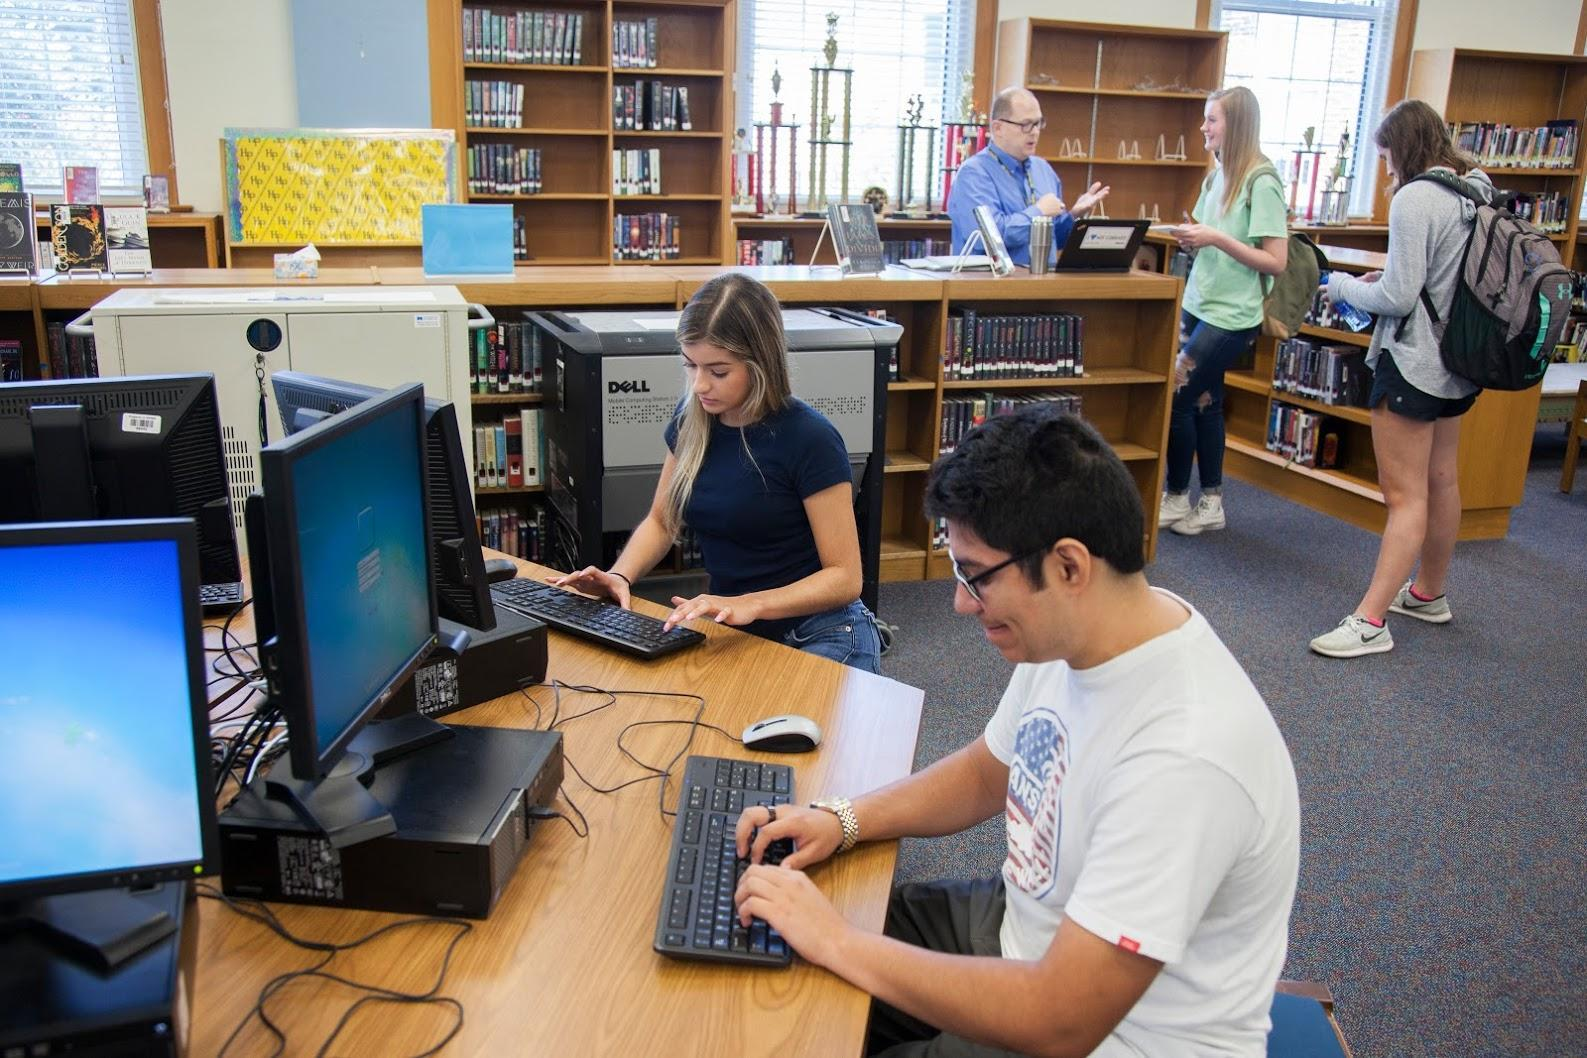 Students working on computers in the high school library